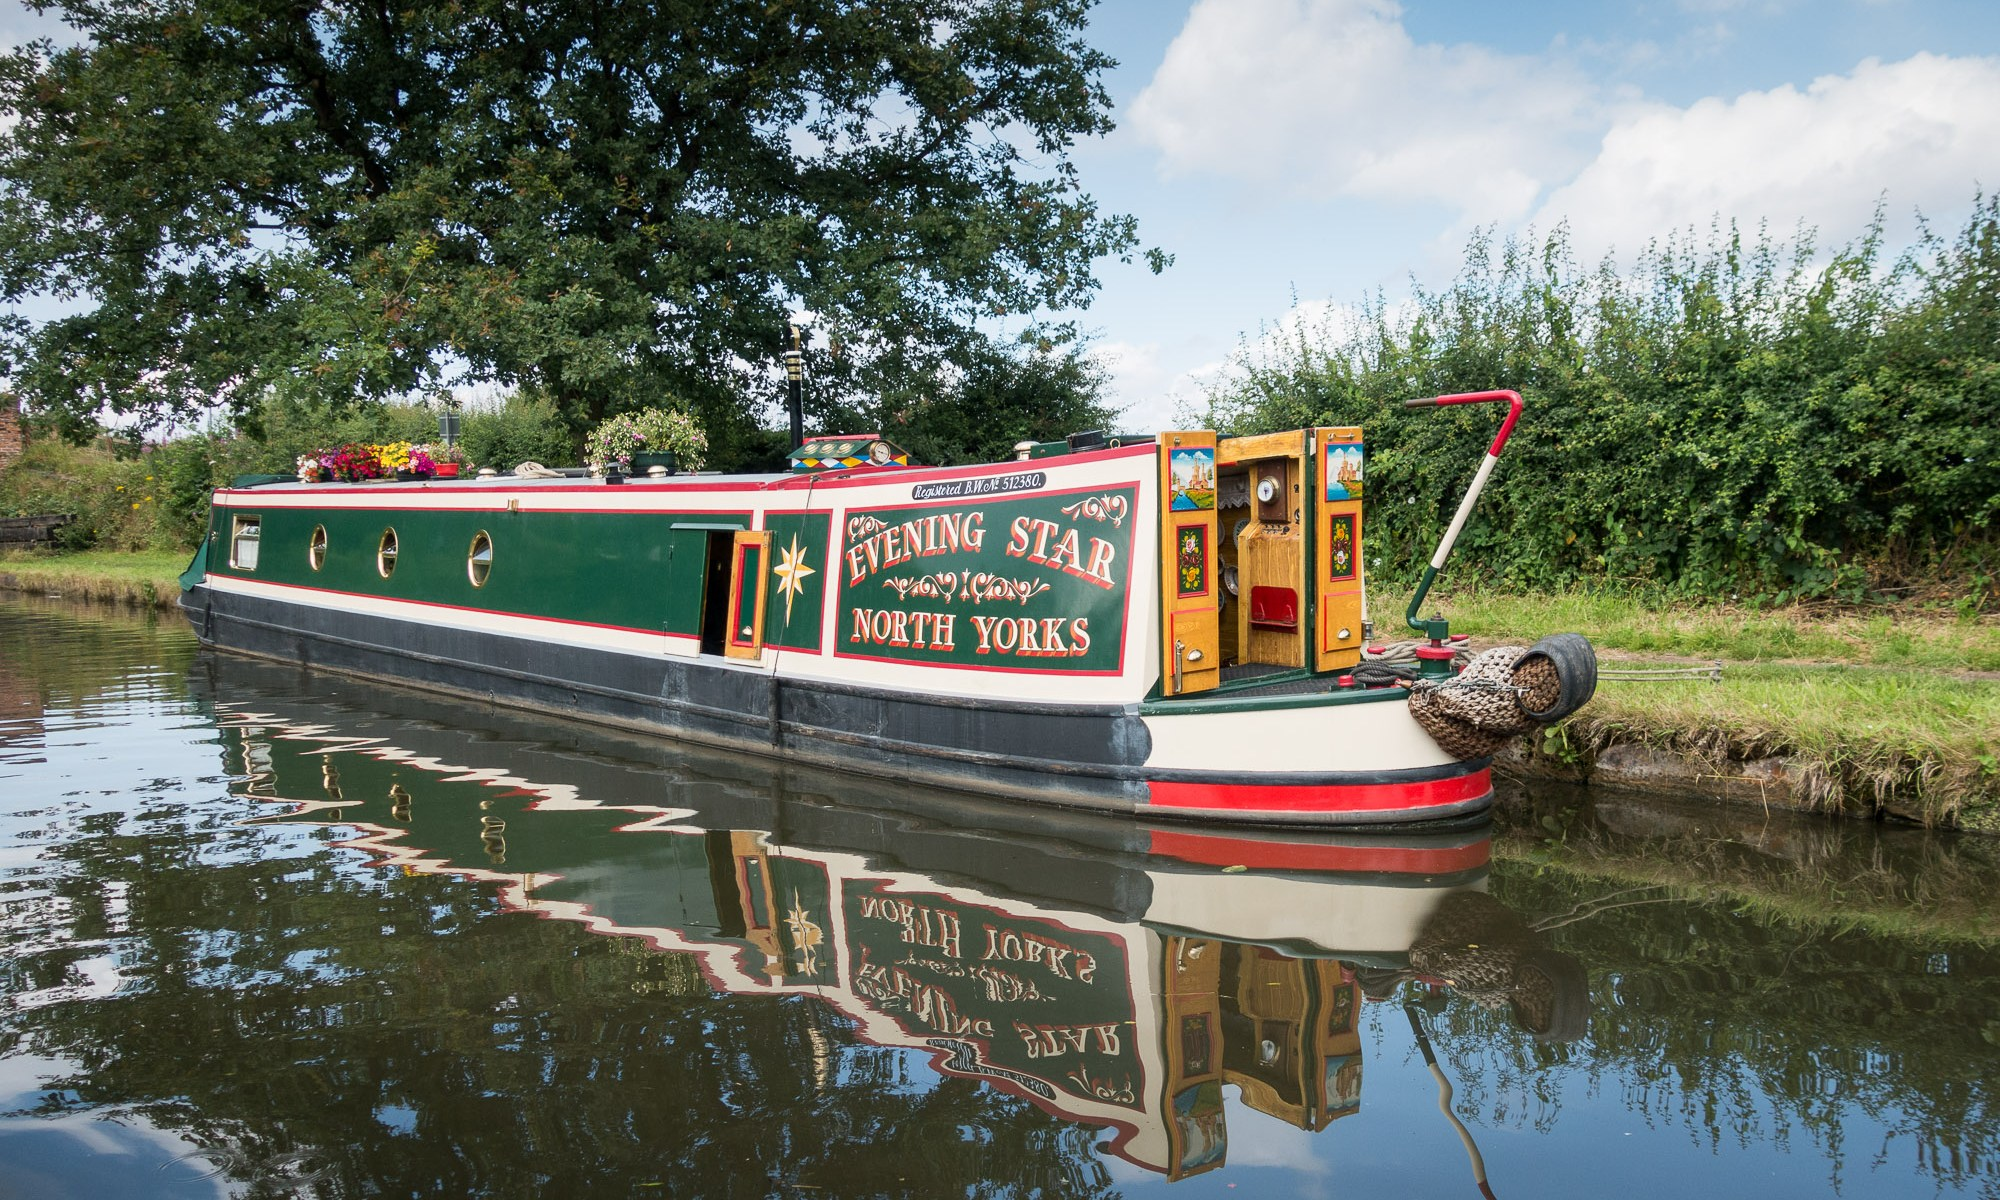 Narrowboat on the bridgewater canal